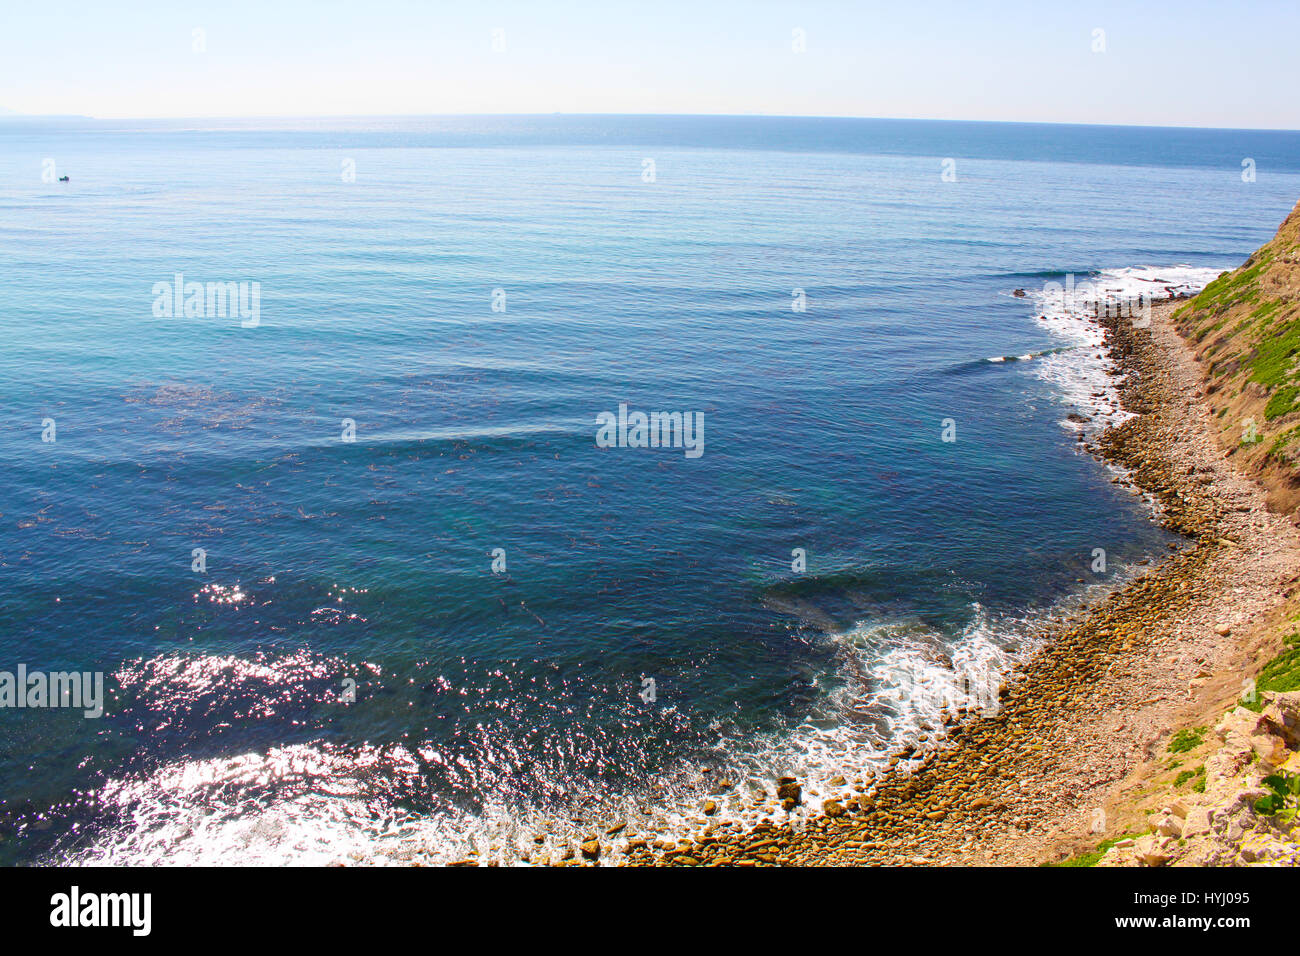 Viewpoint at Palos Verdes overlooking the Pacific Ocean. - Stock Image